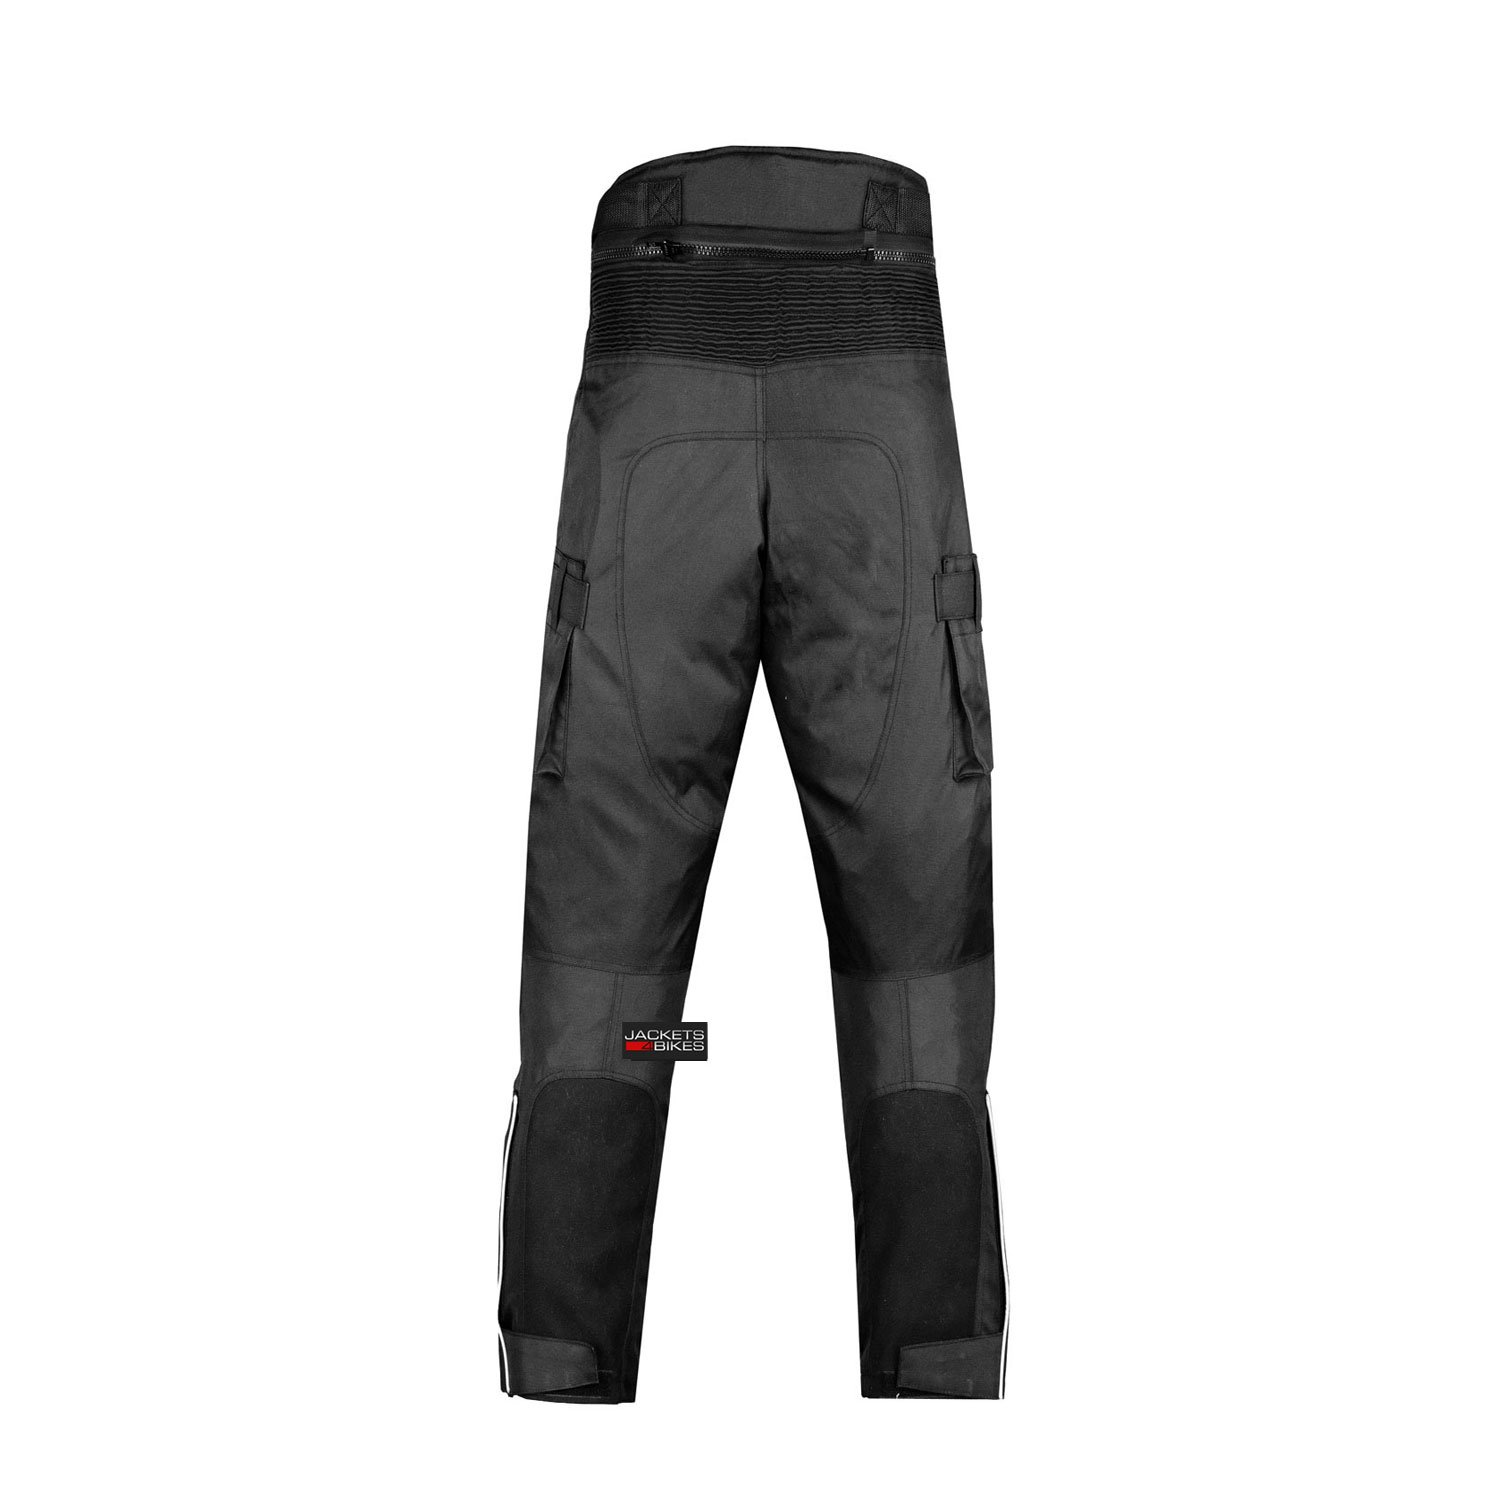 Motorcycle Textile Pants Waterproof Cruiser Touring Riding Armor Black 36w 30i by Jackets 4 Bikes (Image #3)